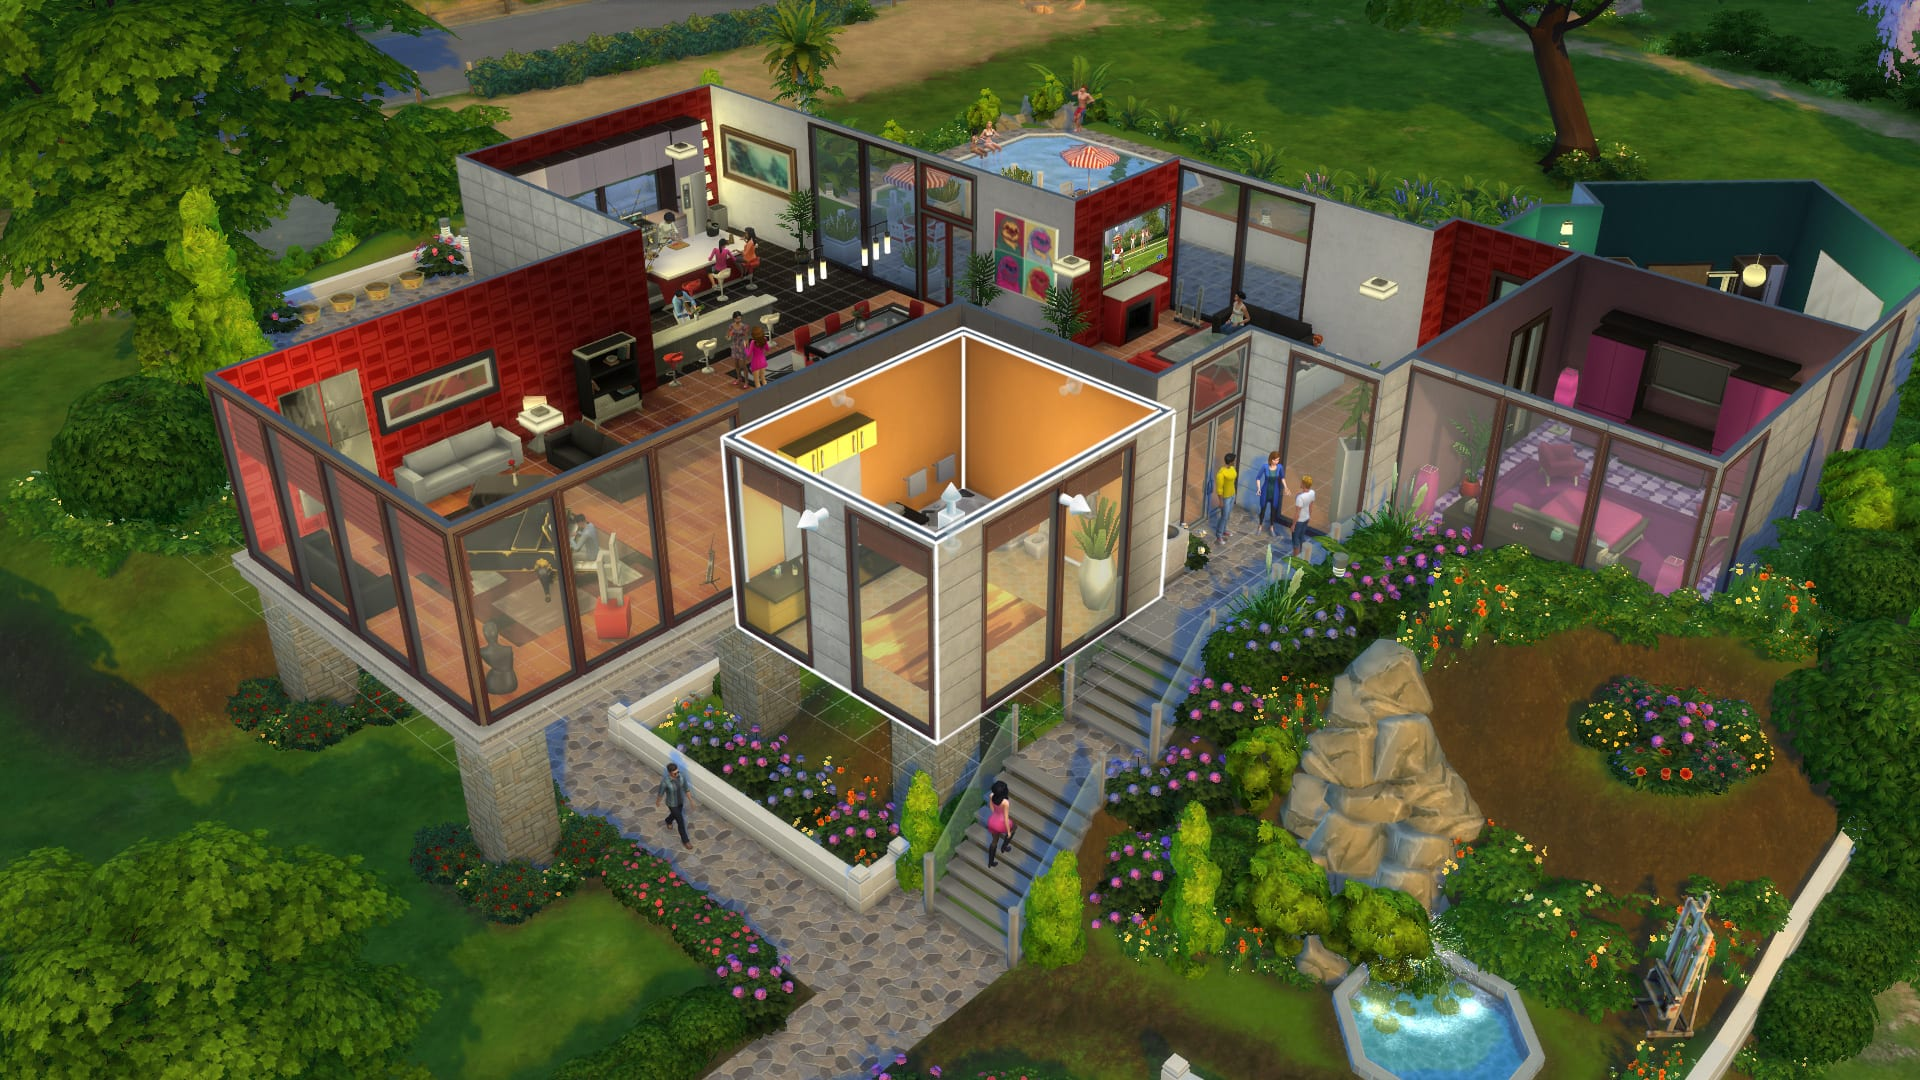 Sims 4 Discover University: Everything You Need To Know